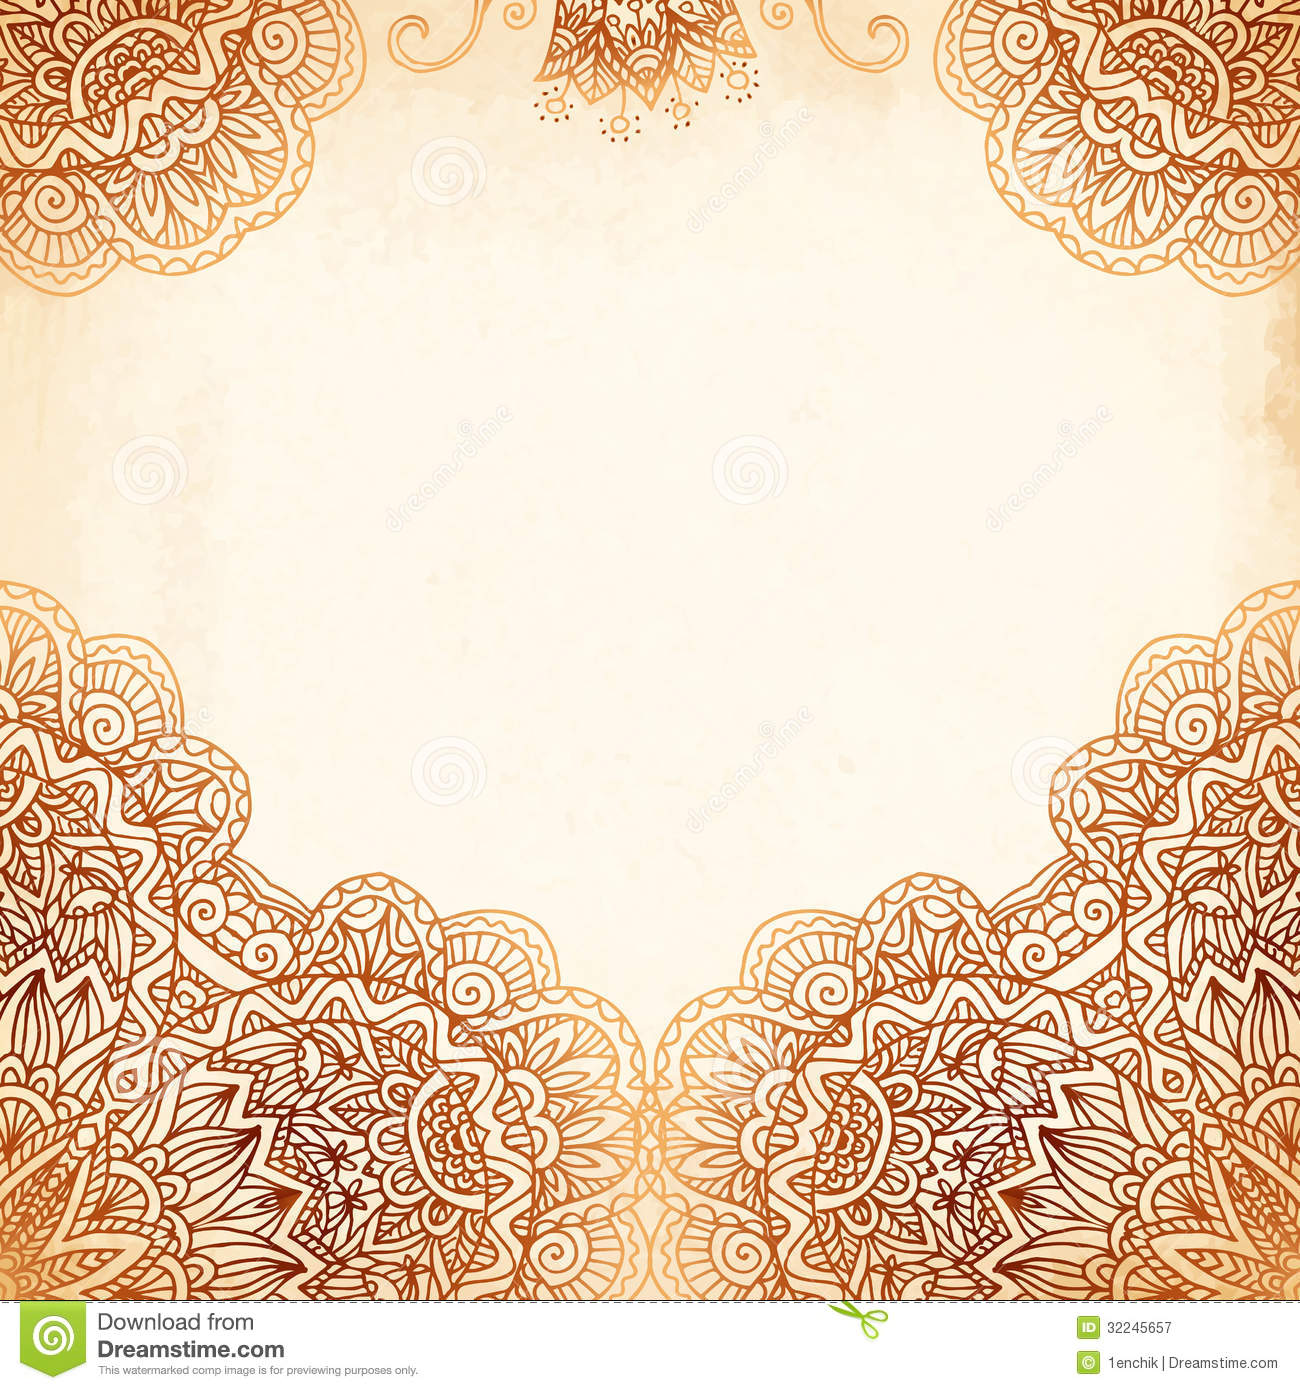 Ornate Vintage Vector Background In Mehndi Style Stock